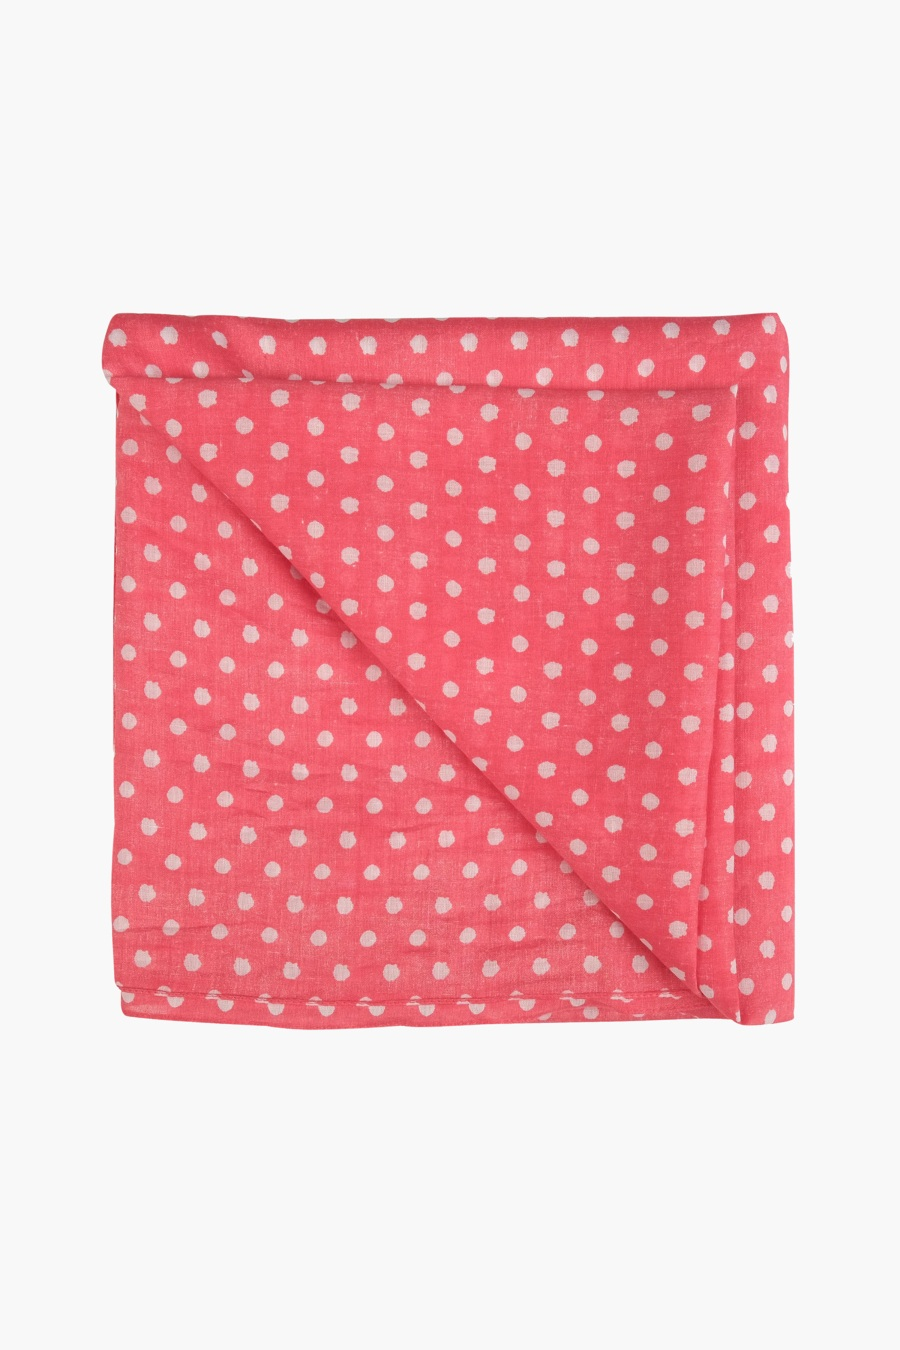 SEASALT CLOTHING - SARONG IN POLKA DOT BEGONIA - £20